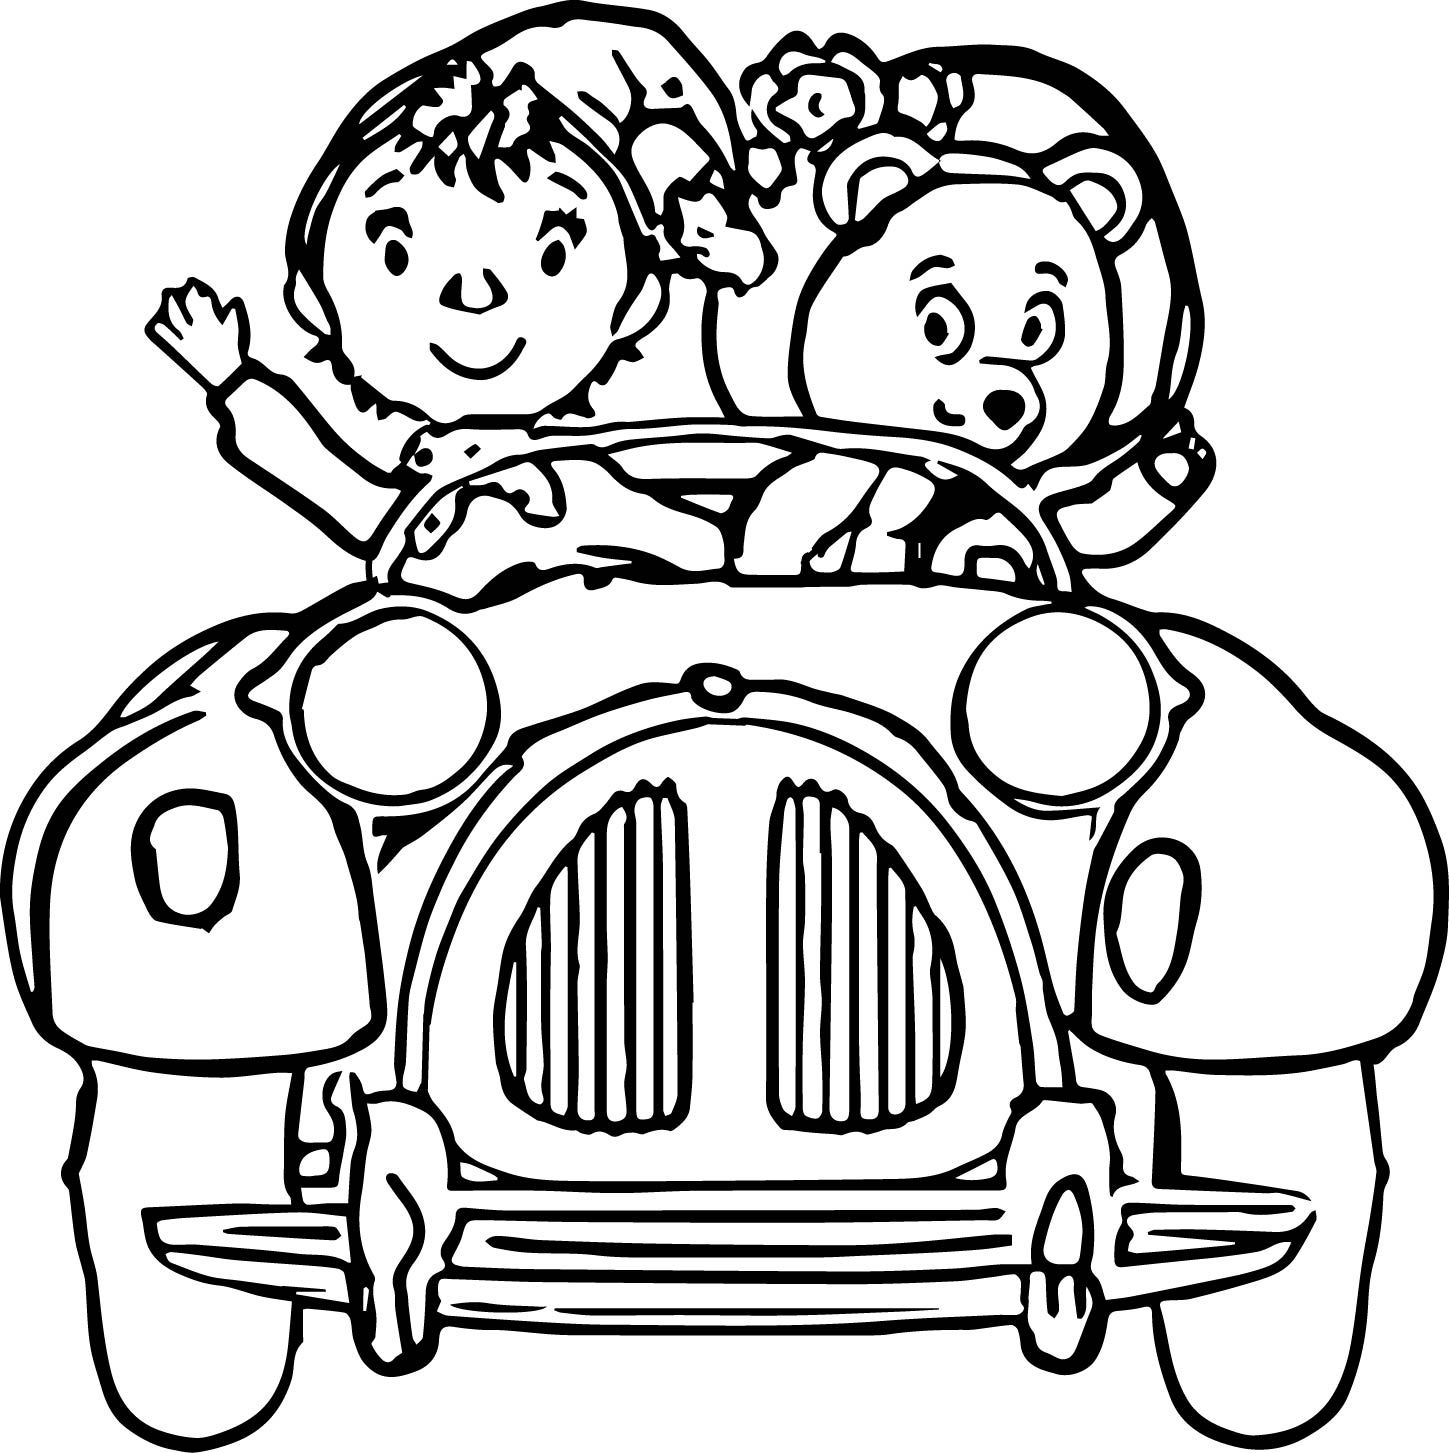 Cool Noddy Cartoon Coloring Pages Check More At